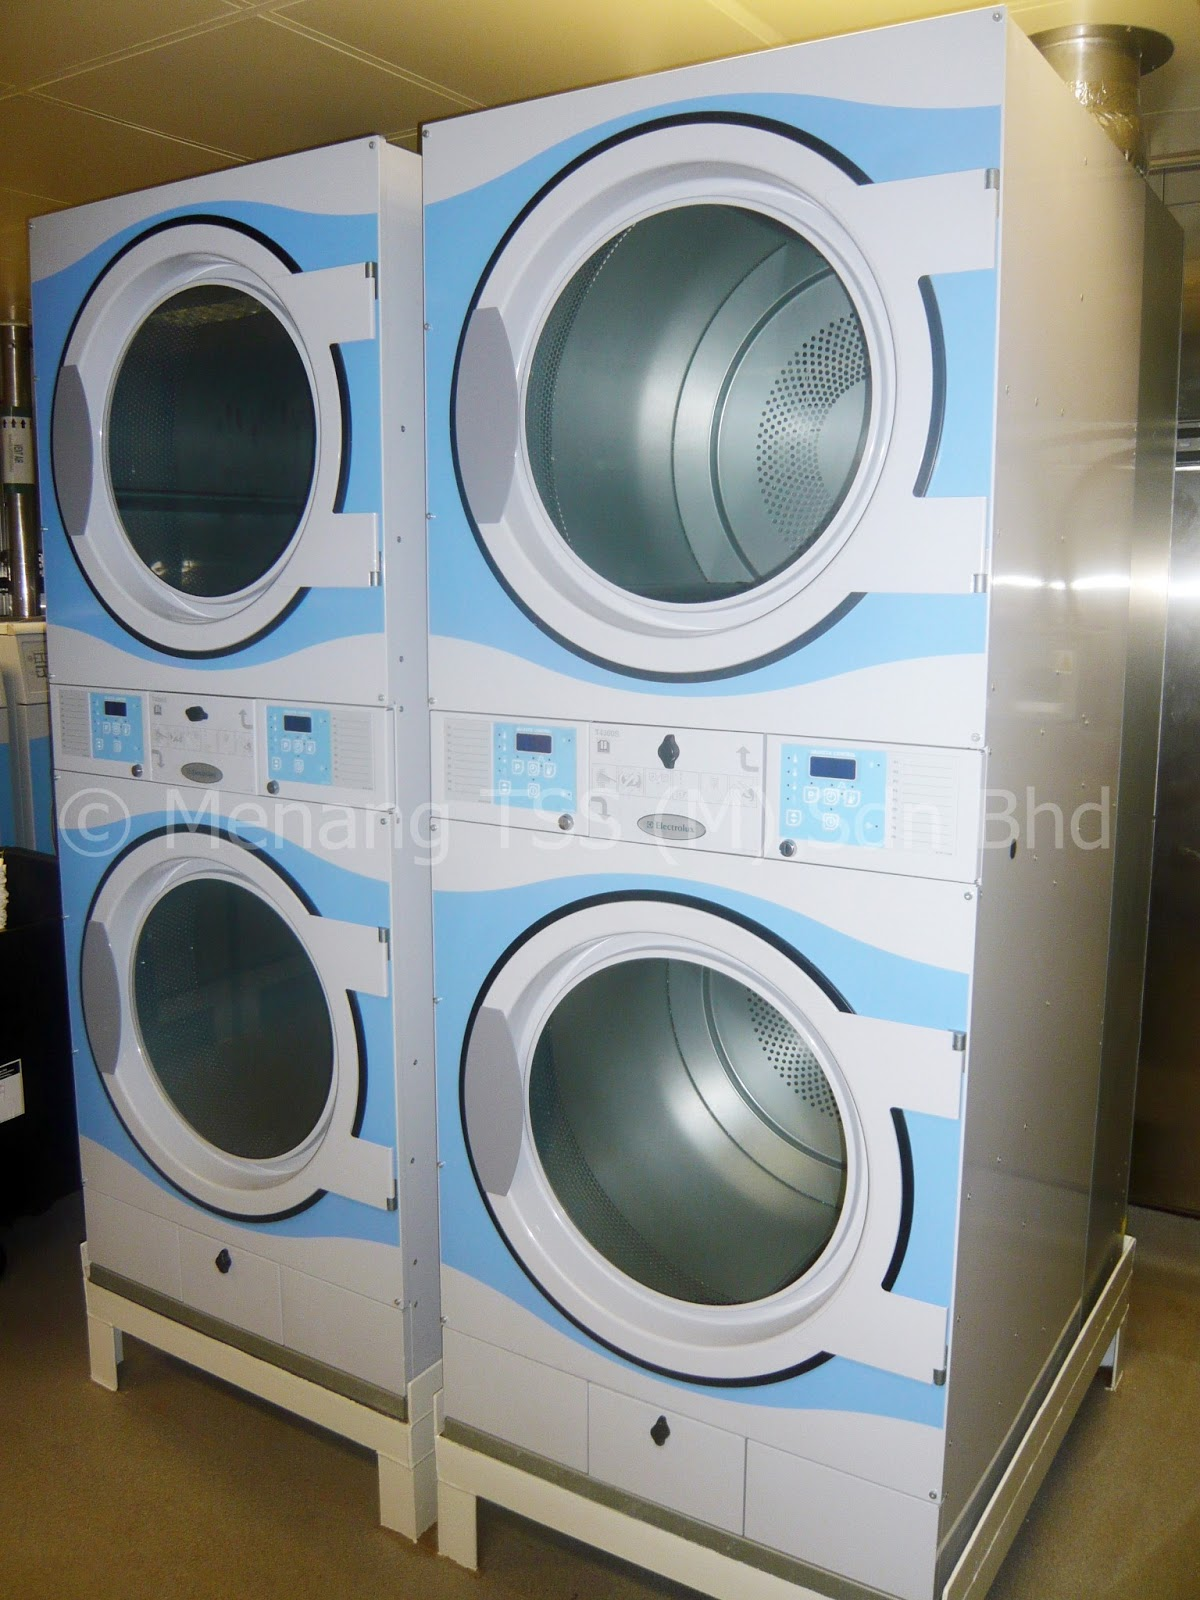 Commerical Washer For Home ~ Commercial washer dryer menang tss m sdn bhd